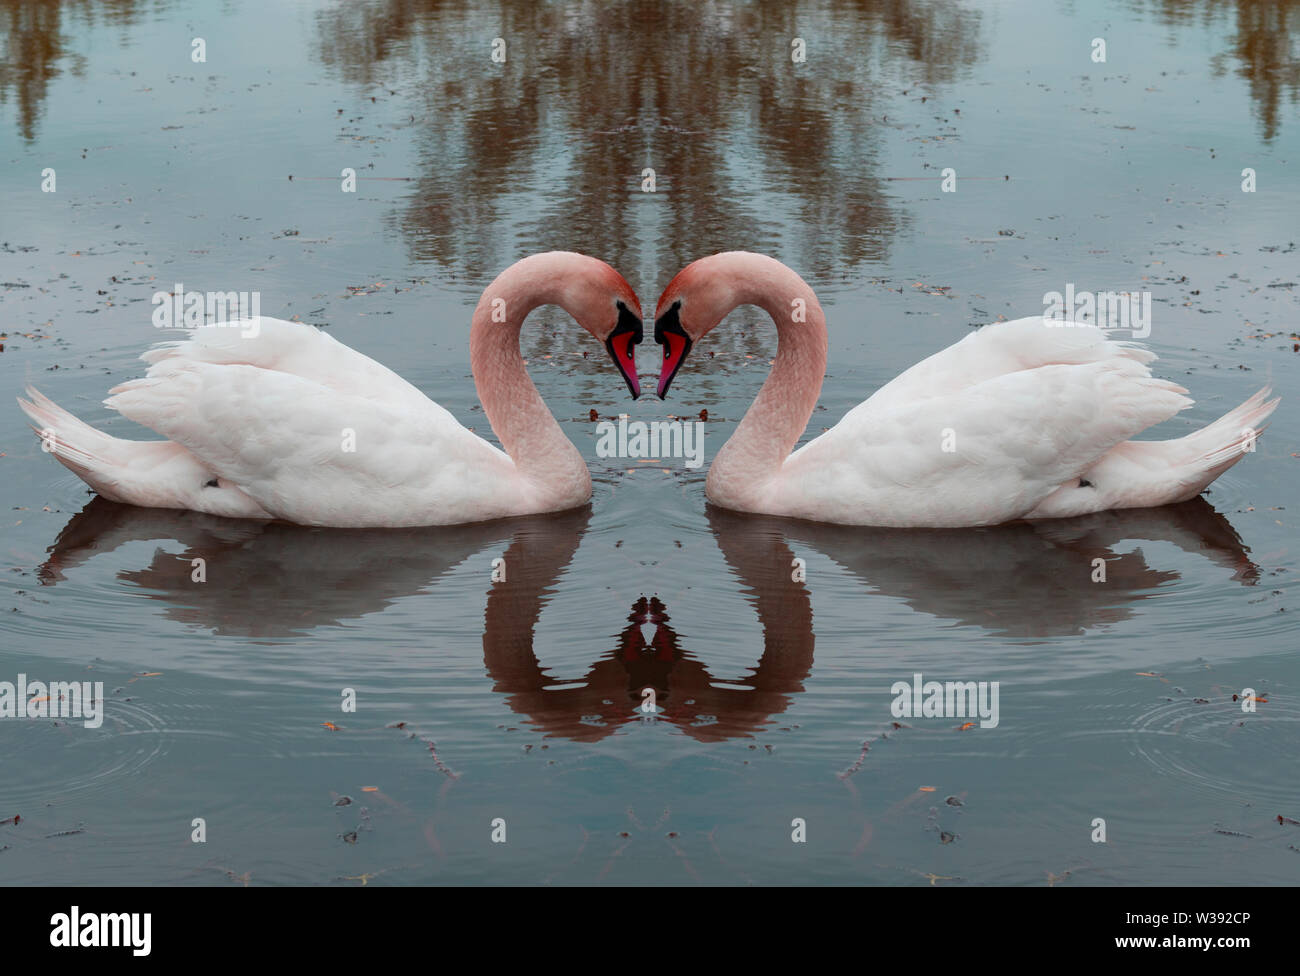 Swans - Love - Heart. Swan on water mirror image. Tender rendition of love, partnership and happiness. Stock Photo